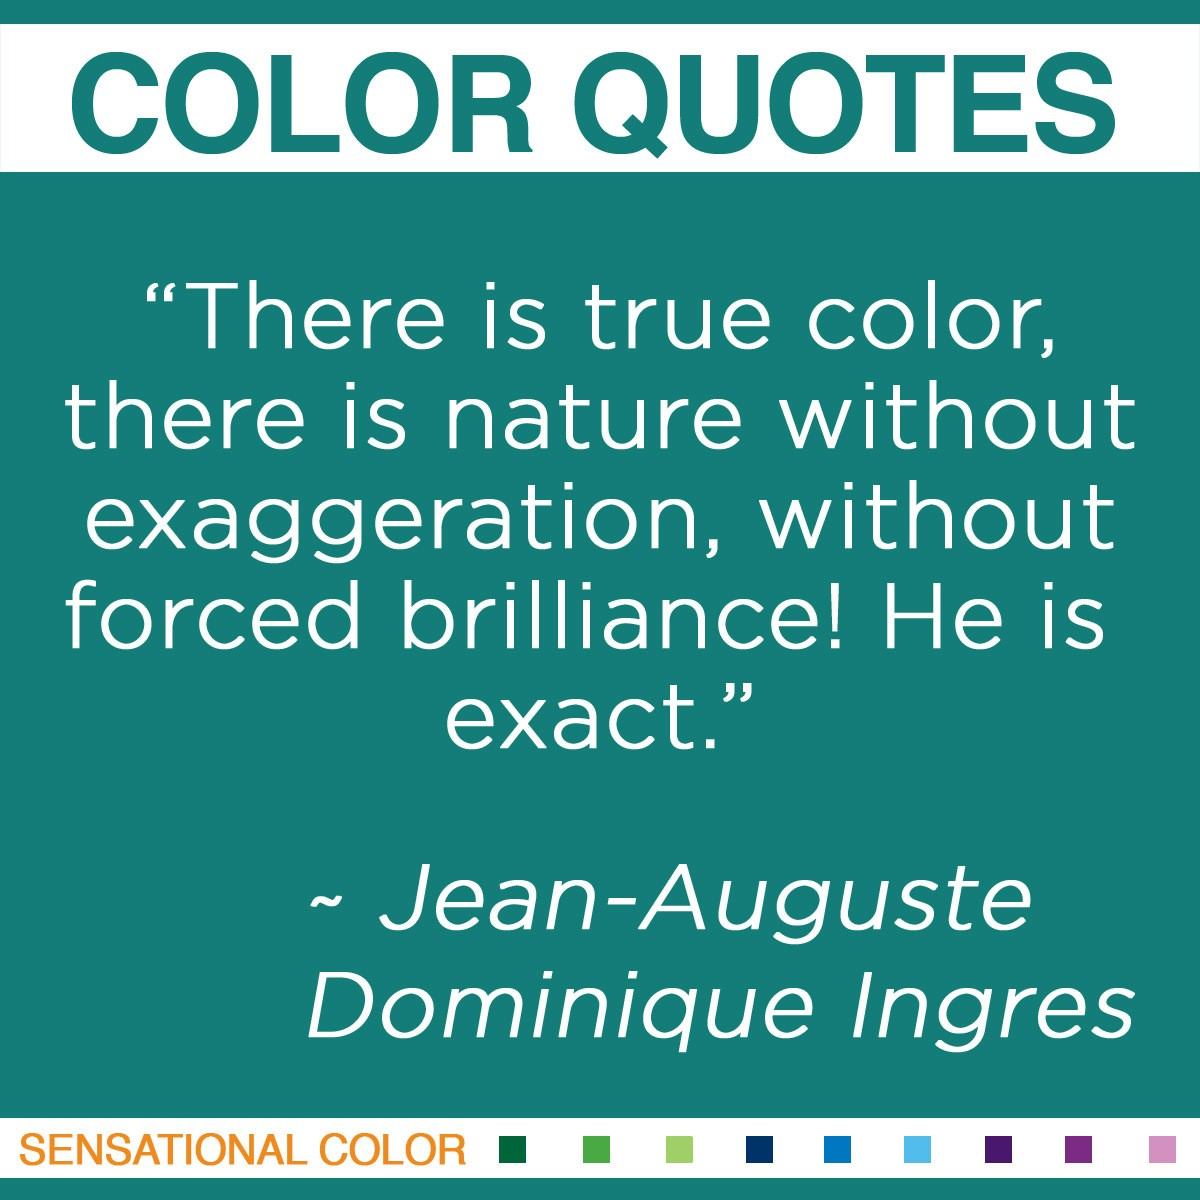 """There is true color, there is nature without exaggeration, without forced brilliance! He is exact."" - Jean-Auguste-Dominique Ingres"